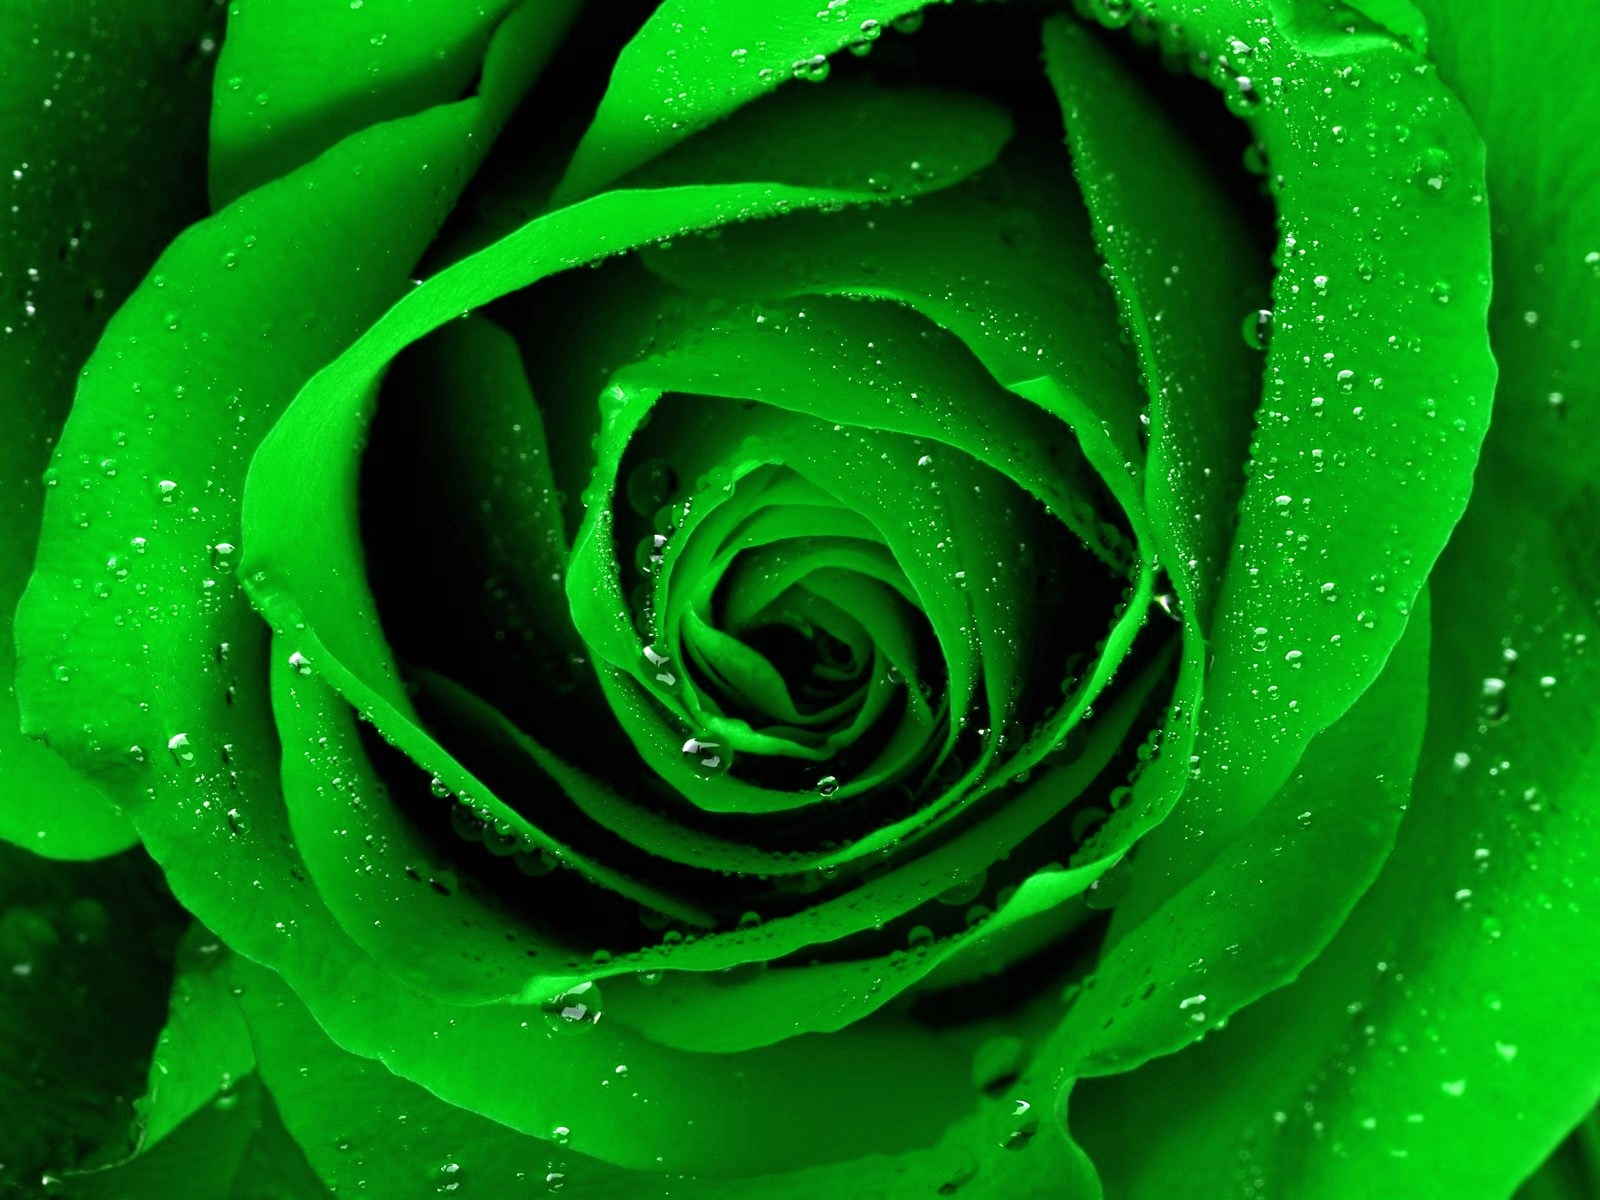 rose wallpaper green rose hd wallpaper download free